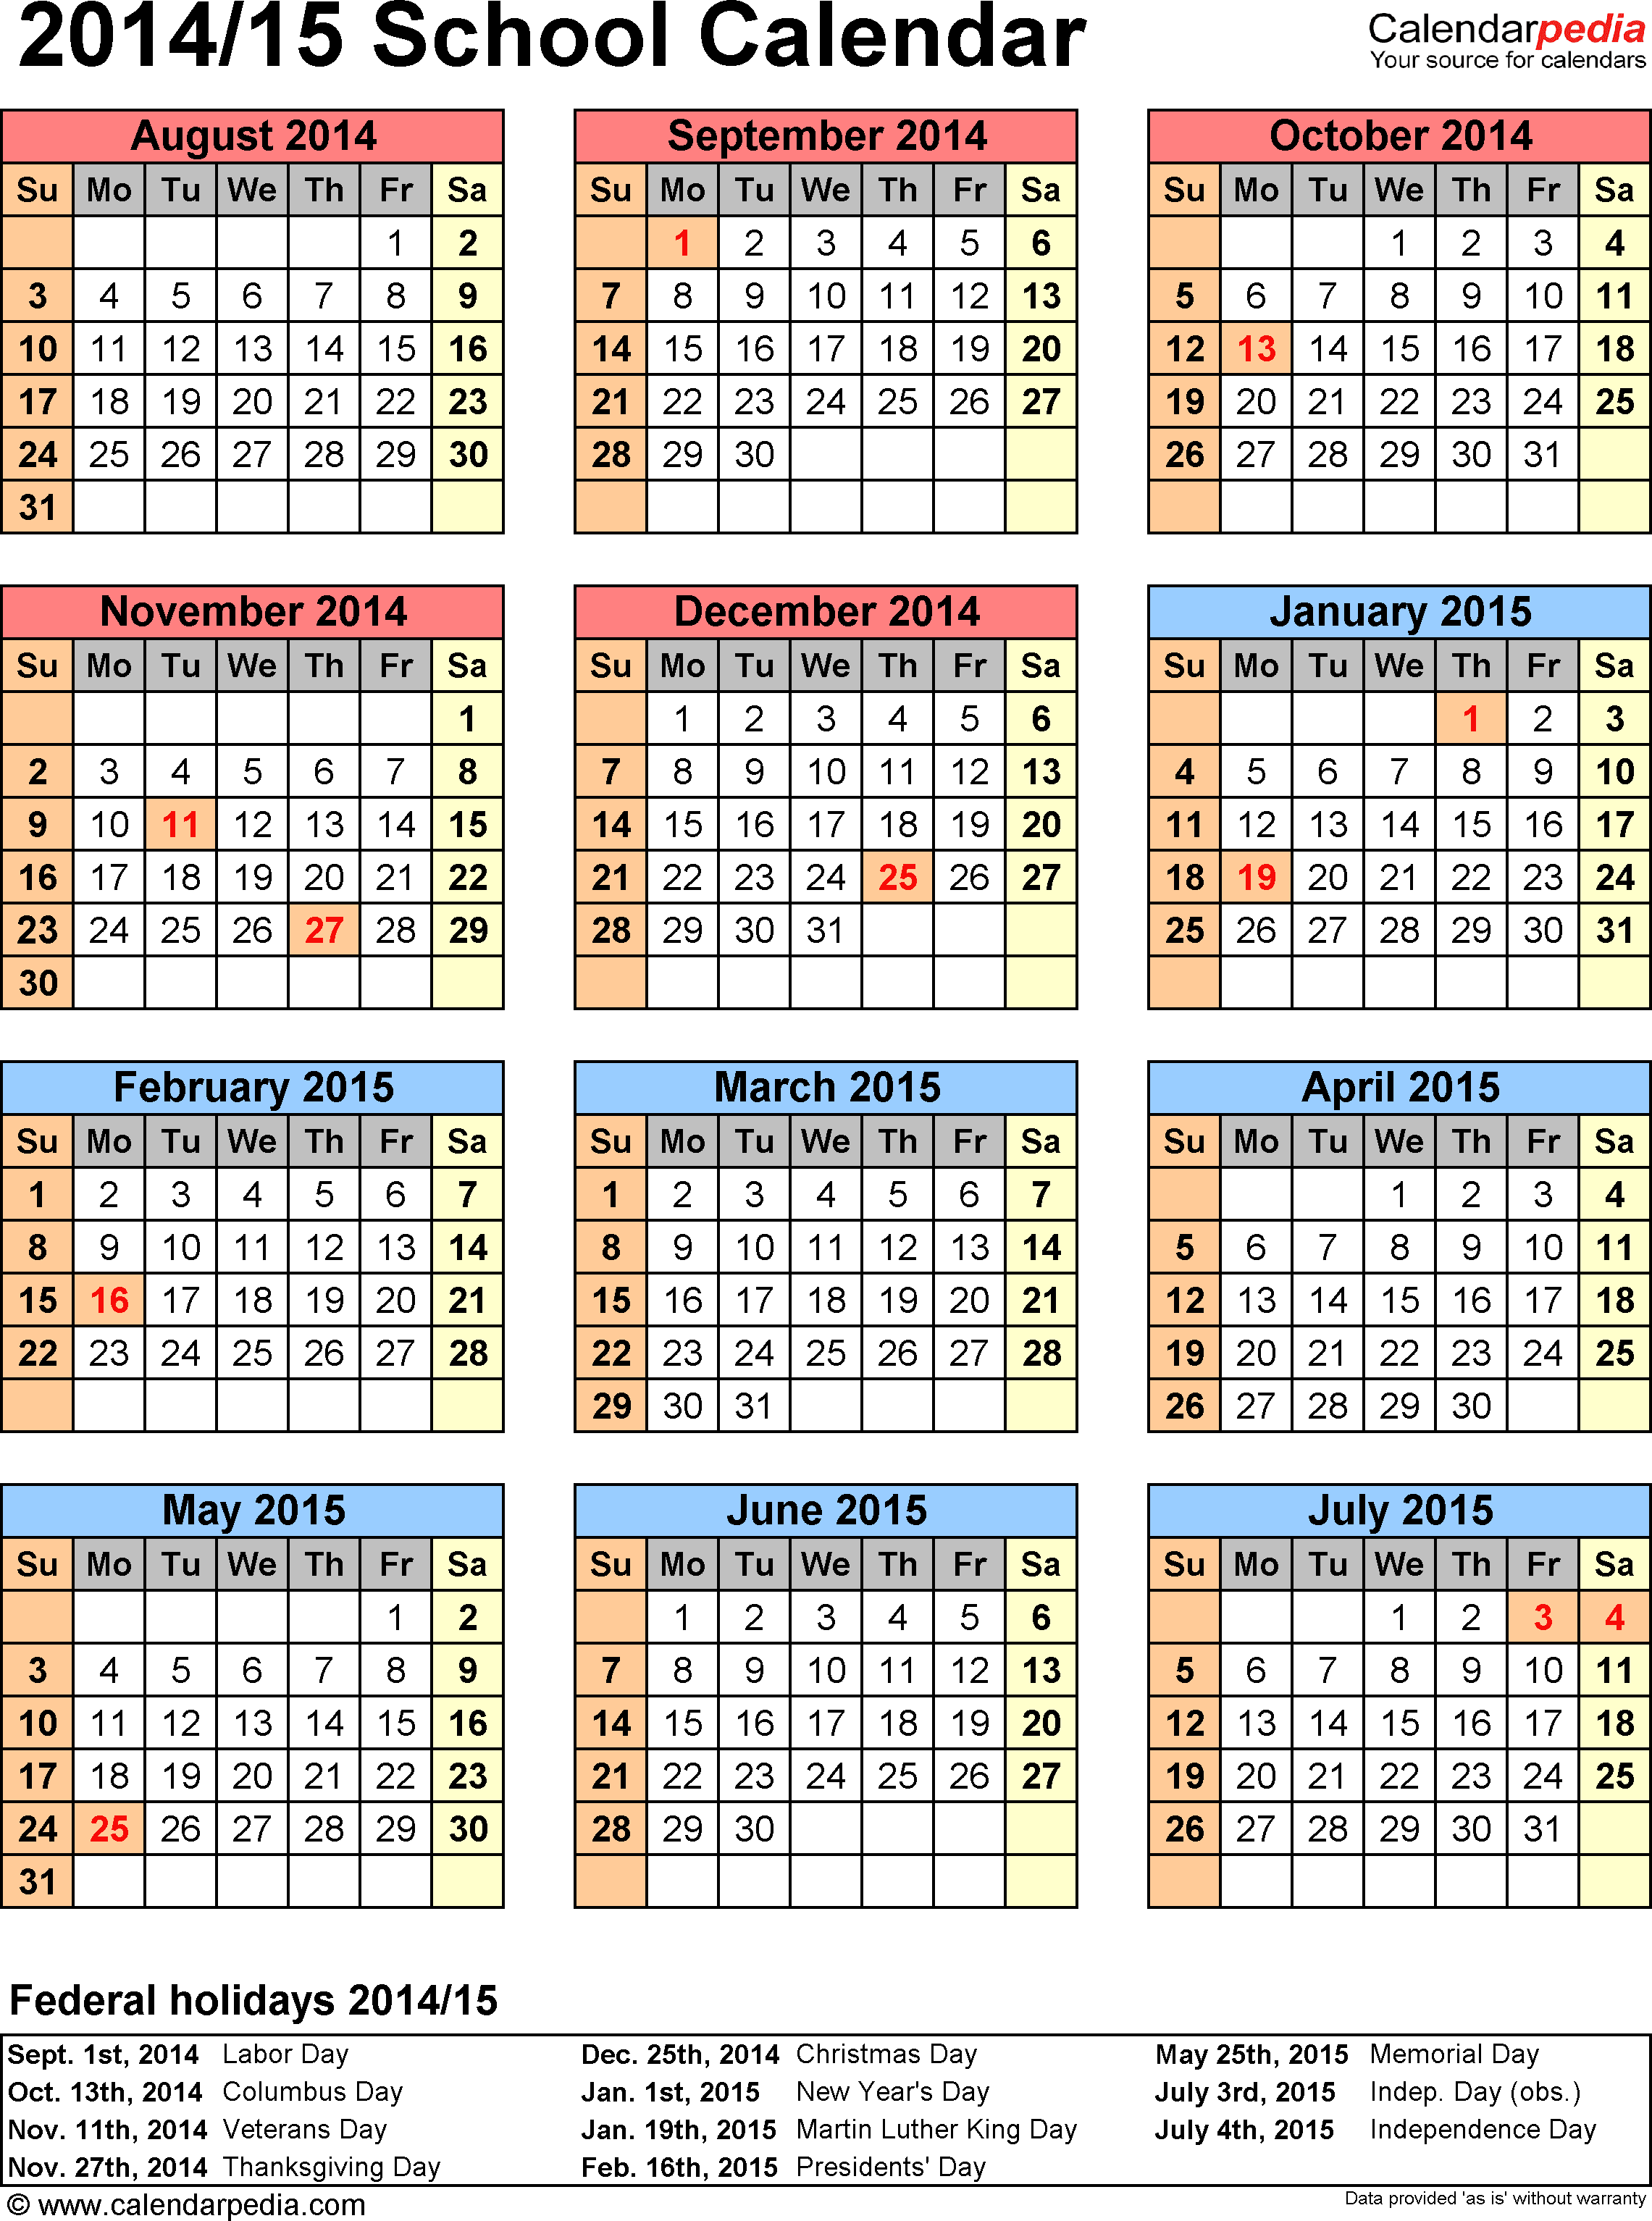 Download Template 6: School calendar 2014/15 in PDF format, portrait, 1 page, year at a glance